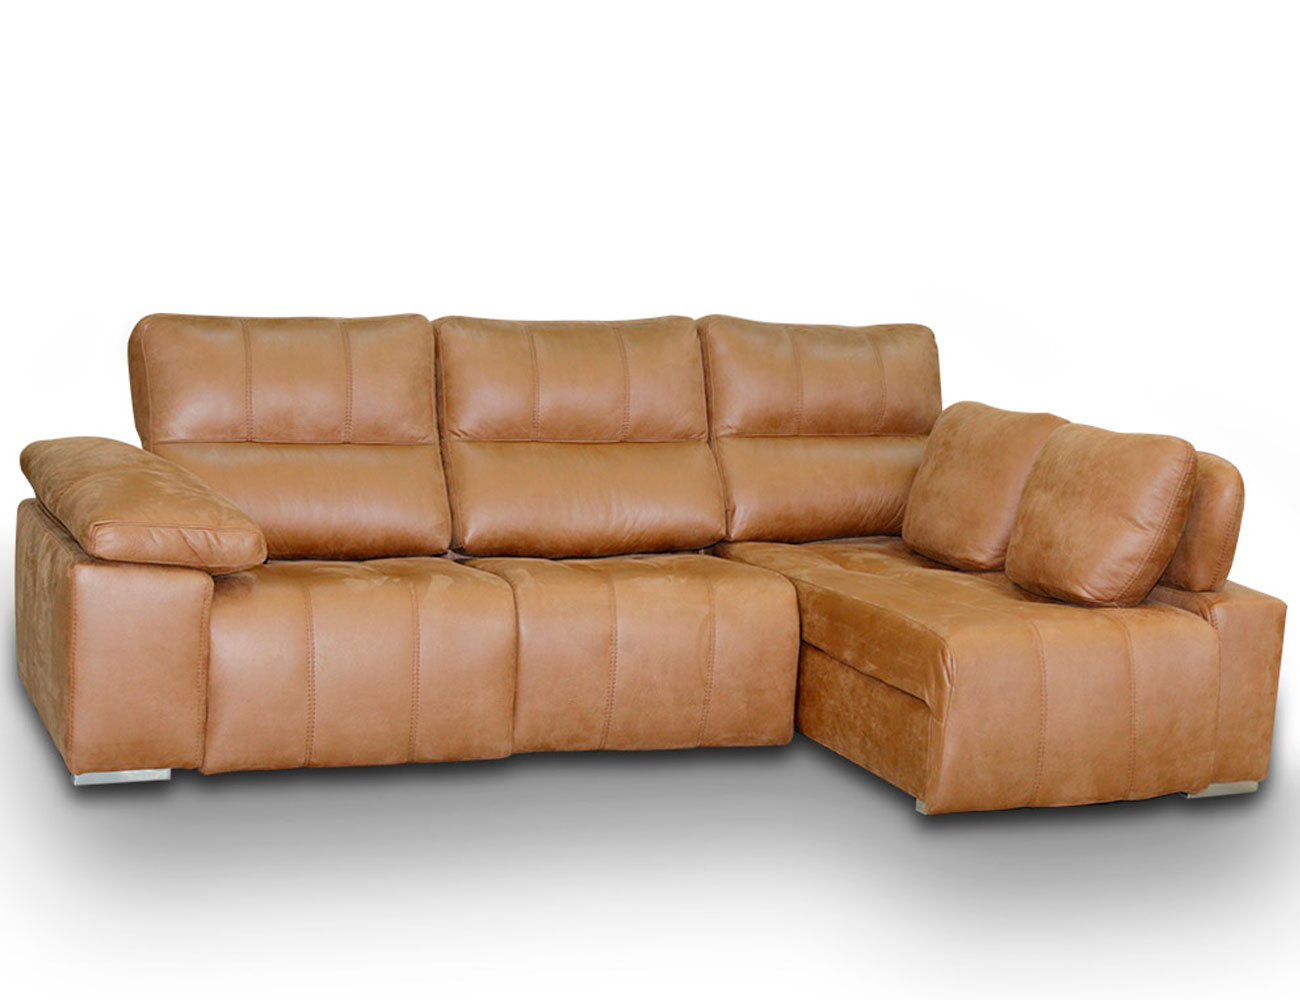 Sofa chaiselongue relax 2 motores anti manchas551